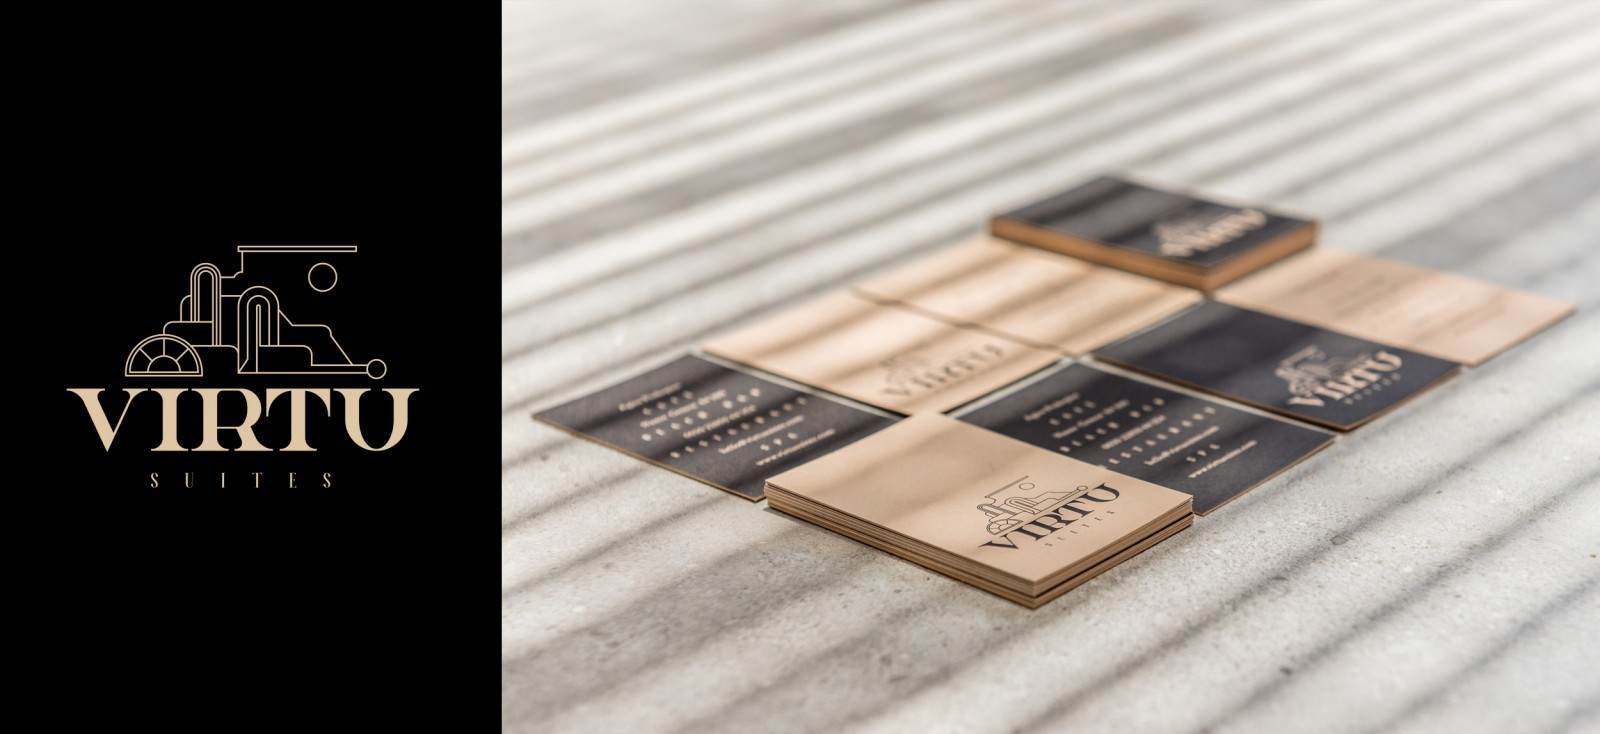 About: Creative Office Creates Vurtù Suites Brand Identity Through a Custom Typeface and Illustration